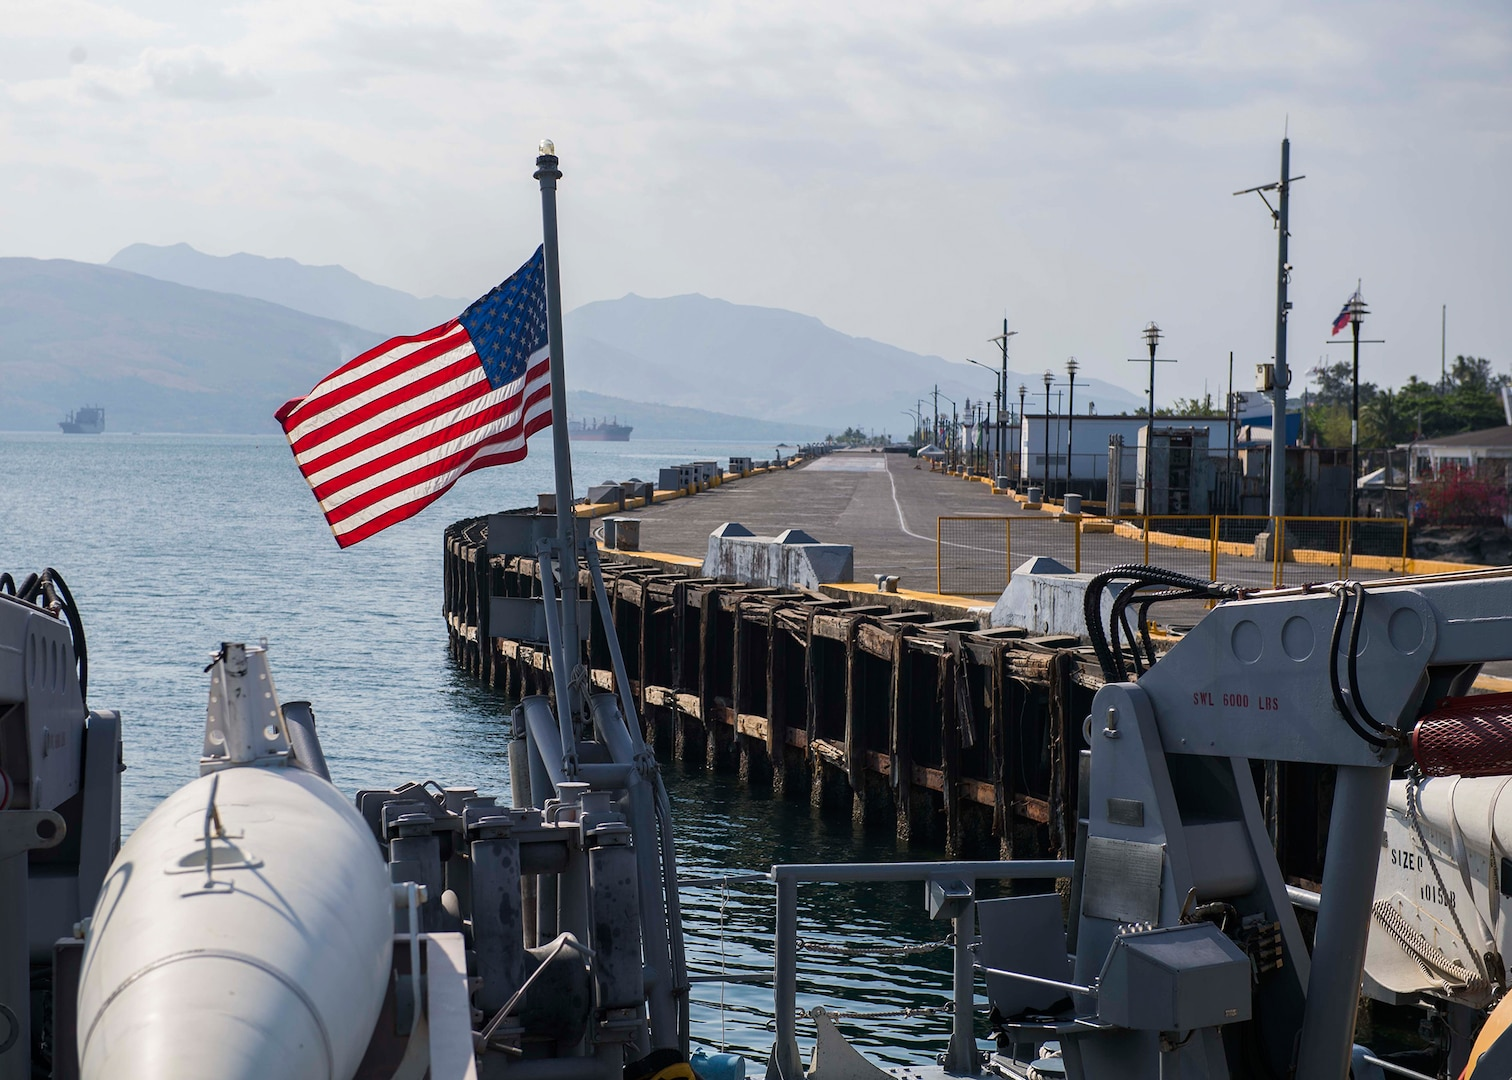 USS Pioneer Arrives in Subic Bay